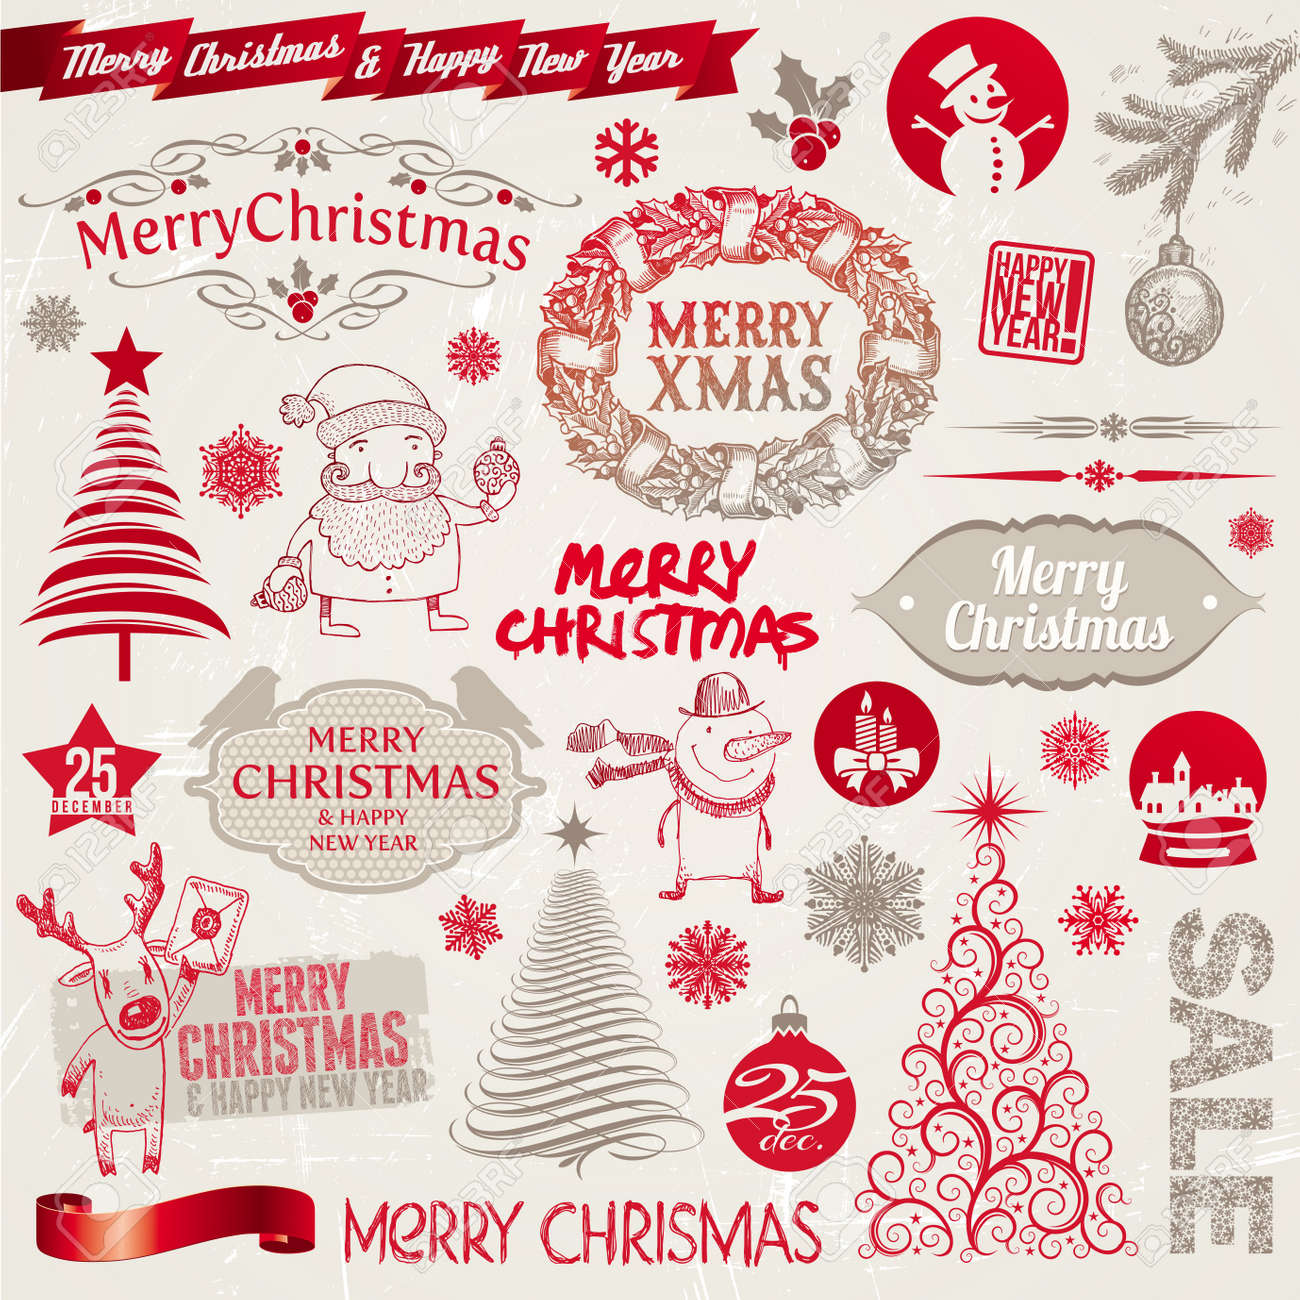 Christmas Signs Set Of Christmas Signs Emblems And Doodles Royalty Free Cliparts